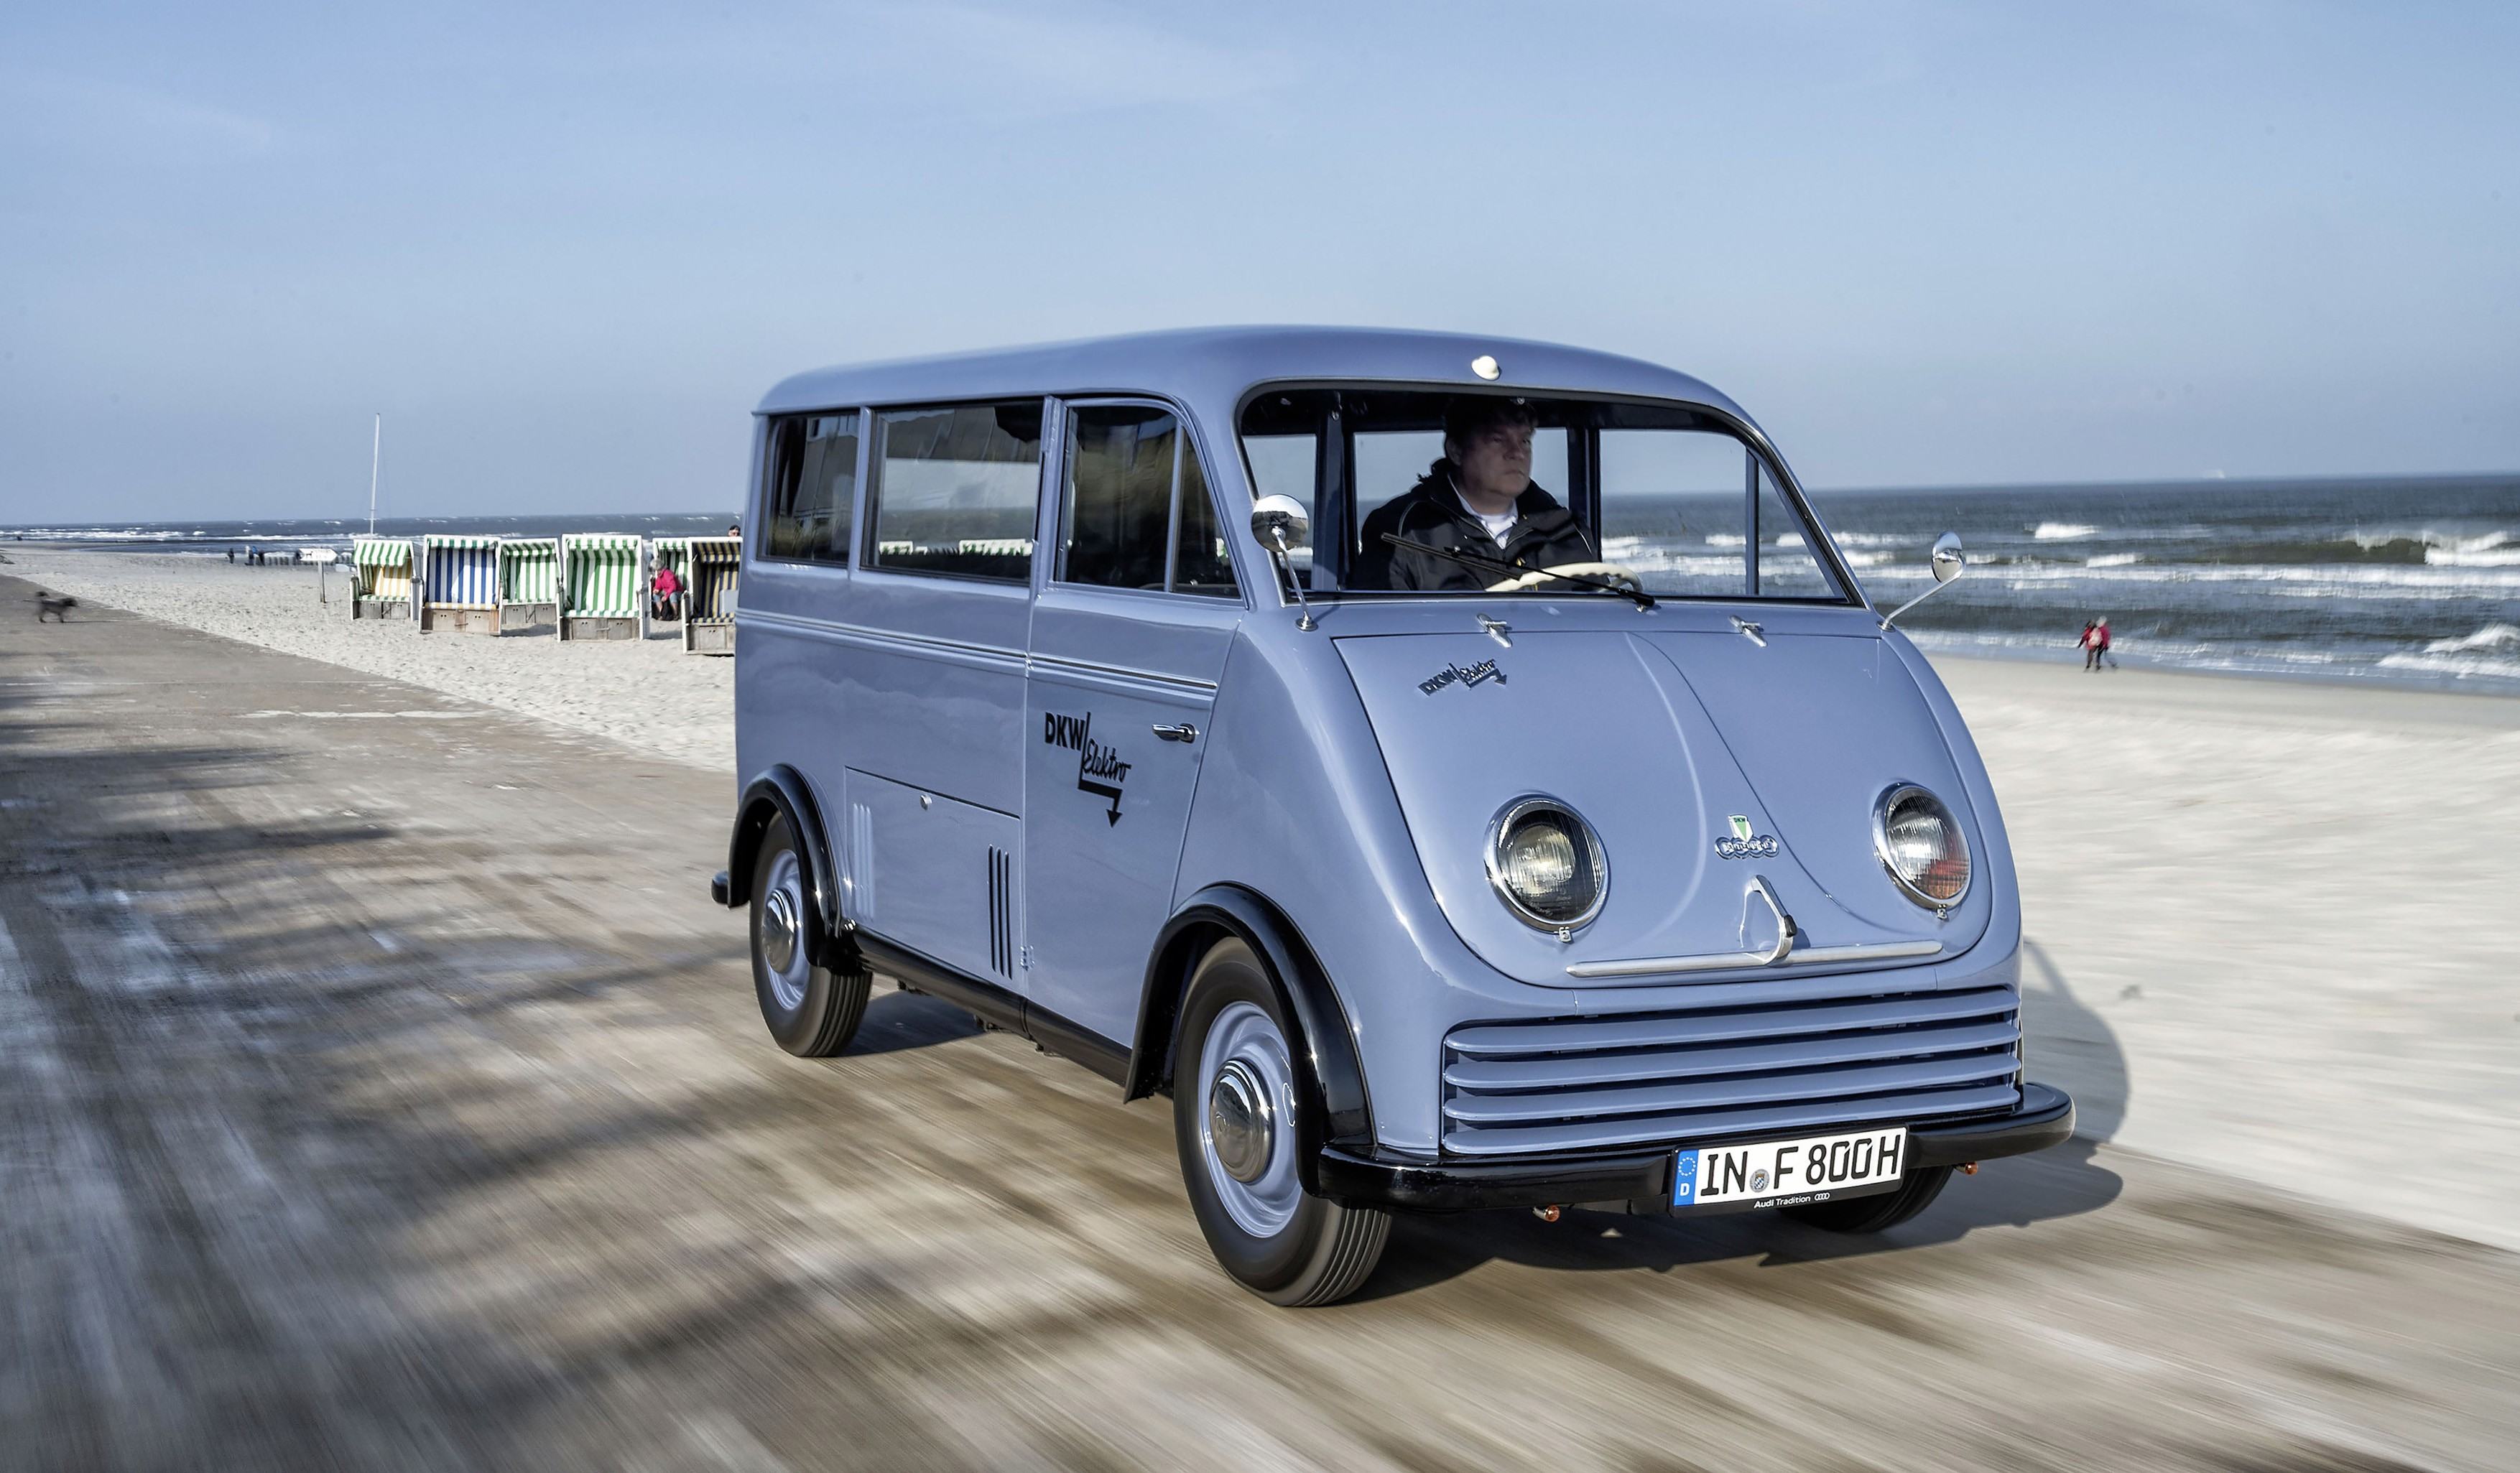 Audi Fully Restores 1956 Dkw Electric Schnellaster Van 91341 on 1 5 hp electric motor